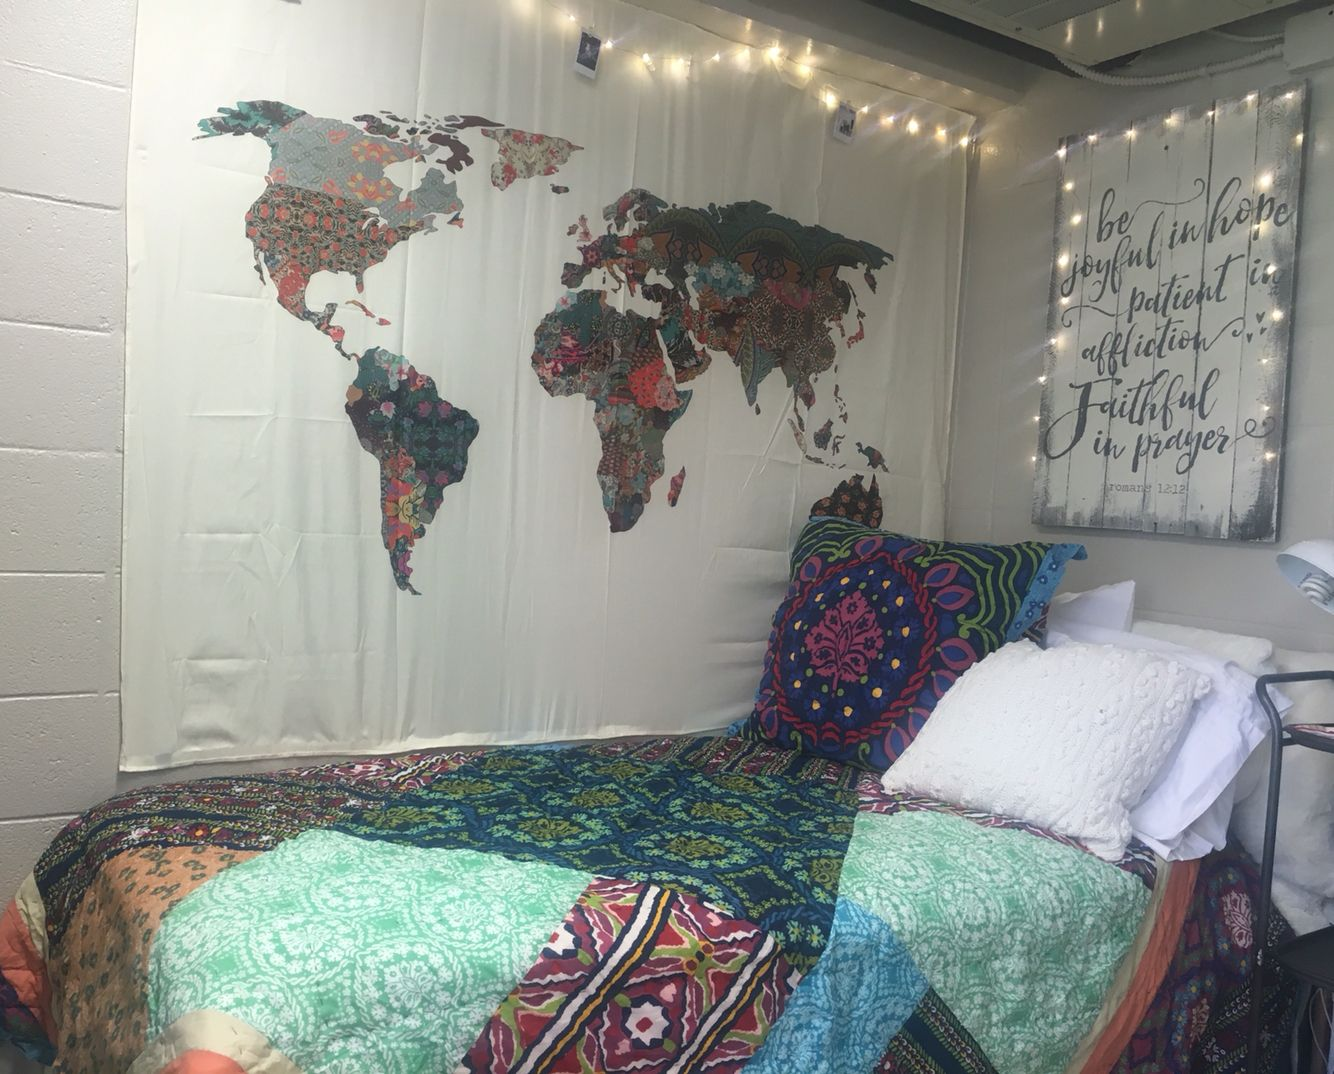 Bohemian Style Dorm Room At Samford University. Dorm Bedding From  Anthropolgie And World Map Tapestry Part 46